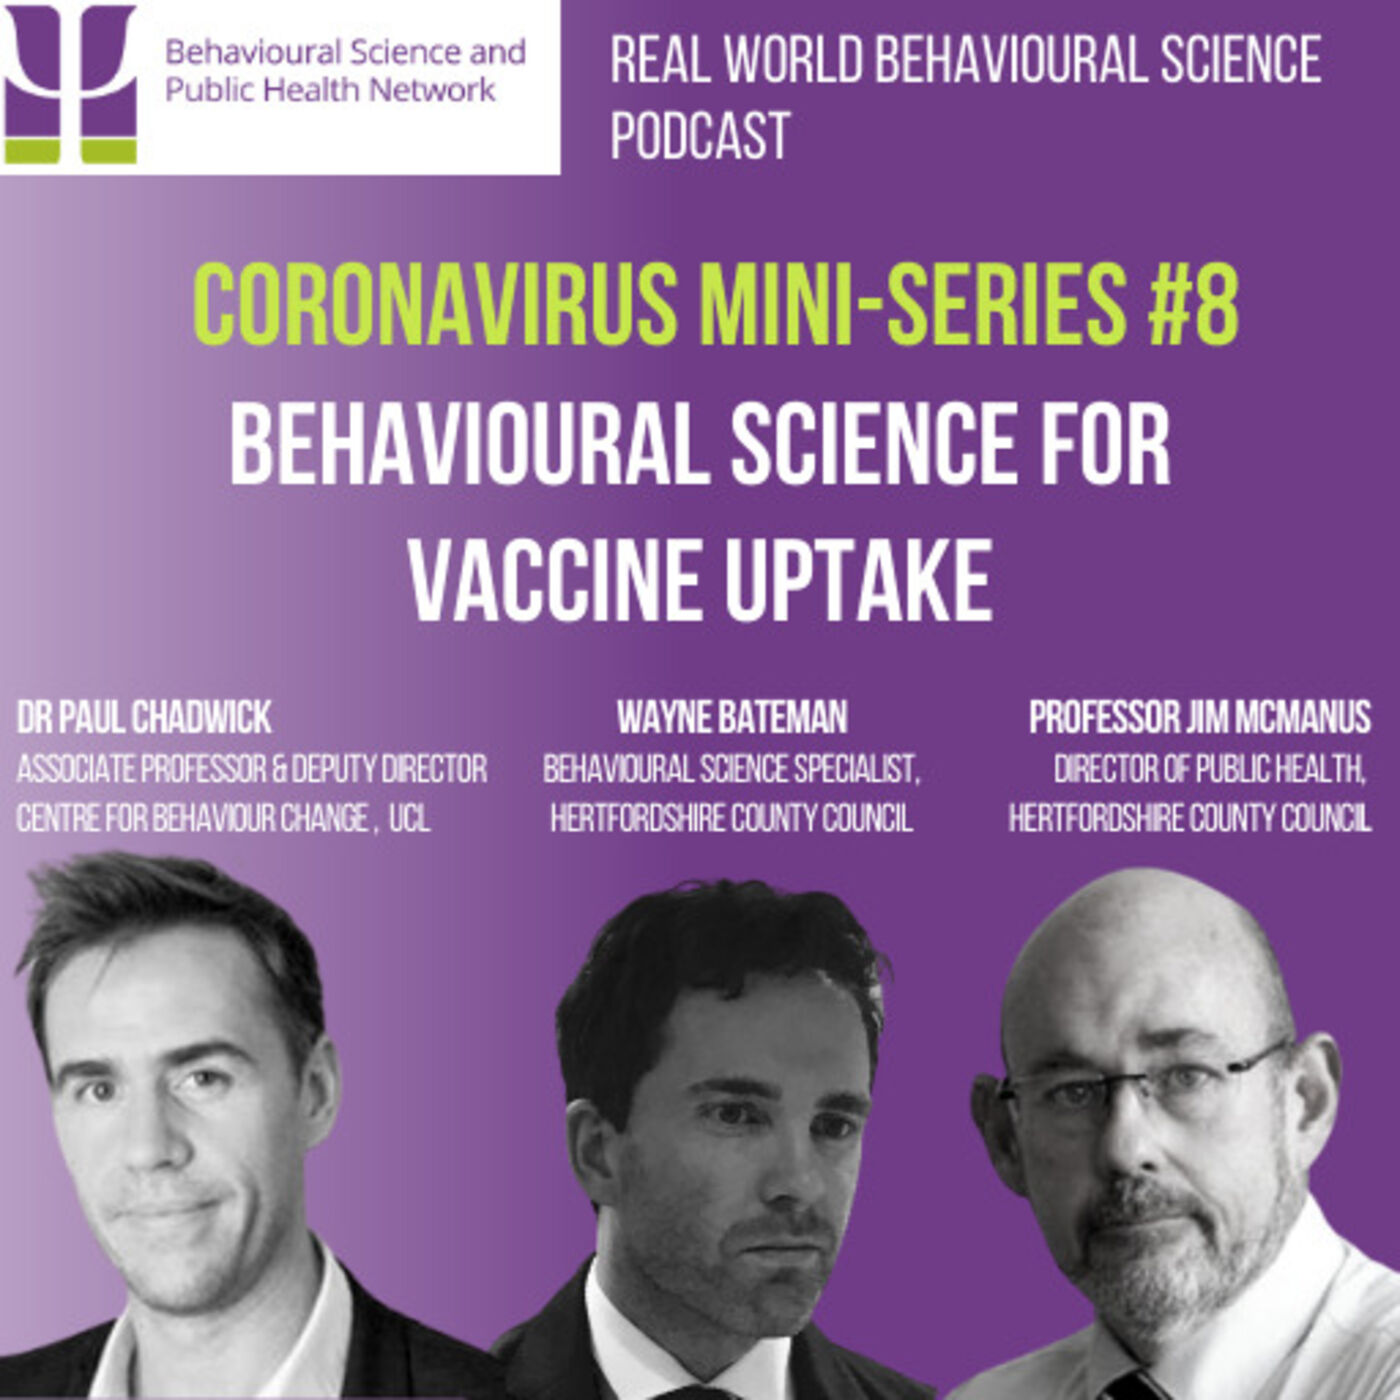 CORONAVIRUS Mini-Series #8 (8th Dec) Behavioural Science to Increase Vaccine Uptake - Jim McManus, Wayne Bateman, Paul Chadwick